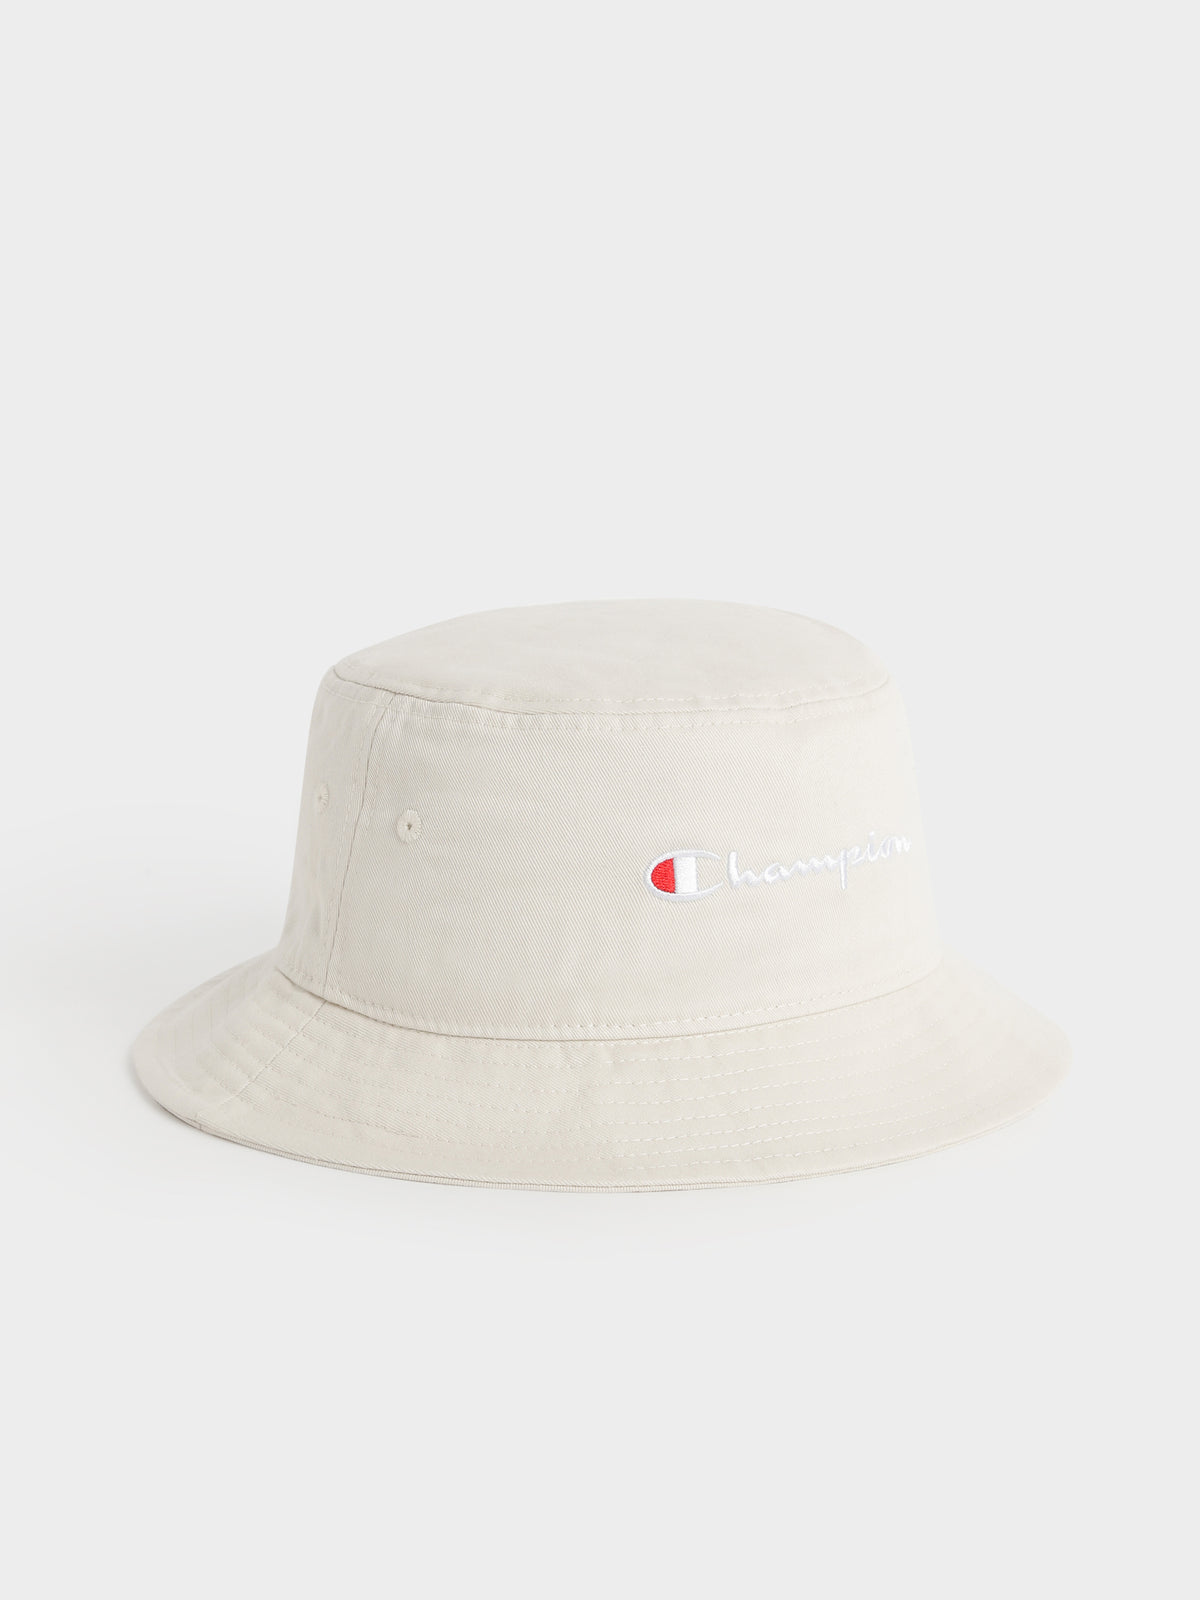 Life Bucket Hat in Pebblestone